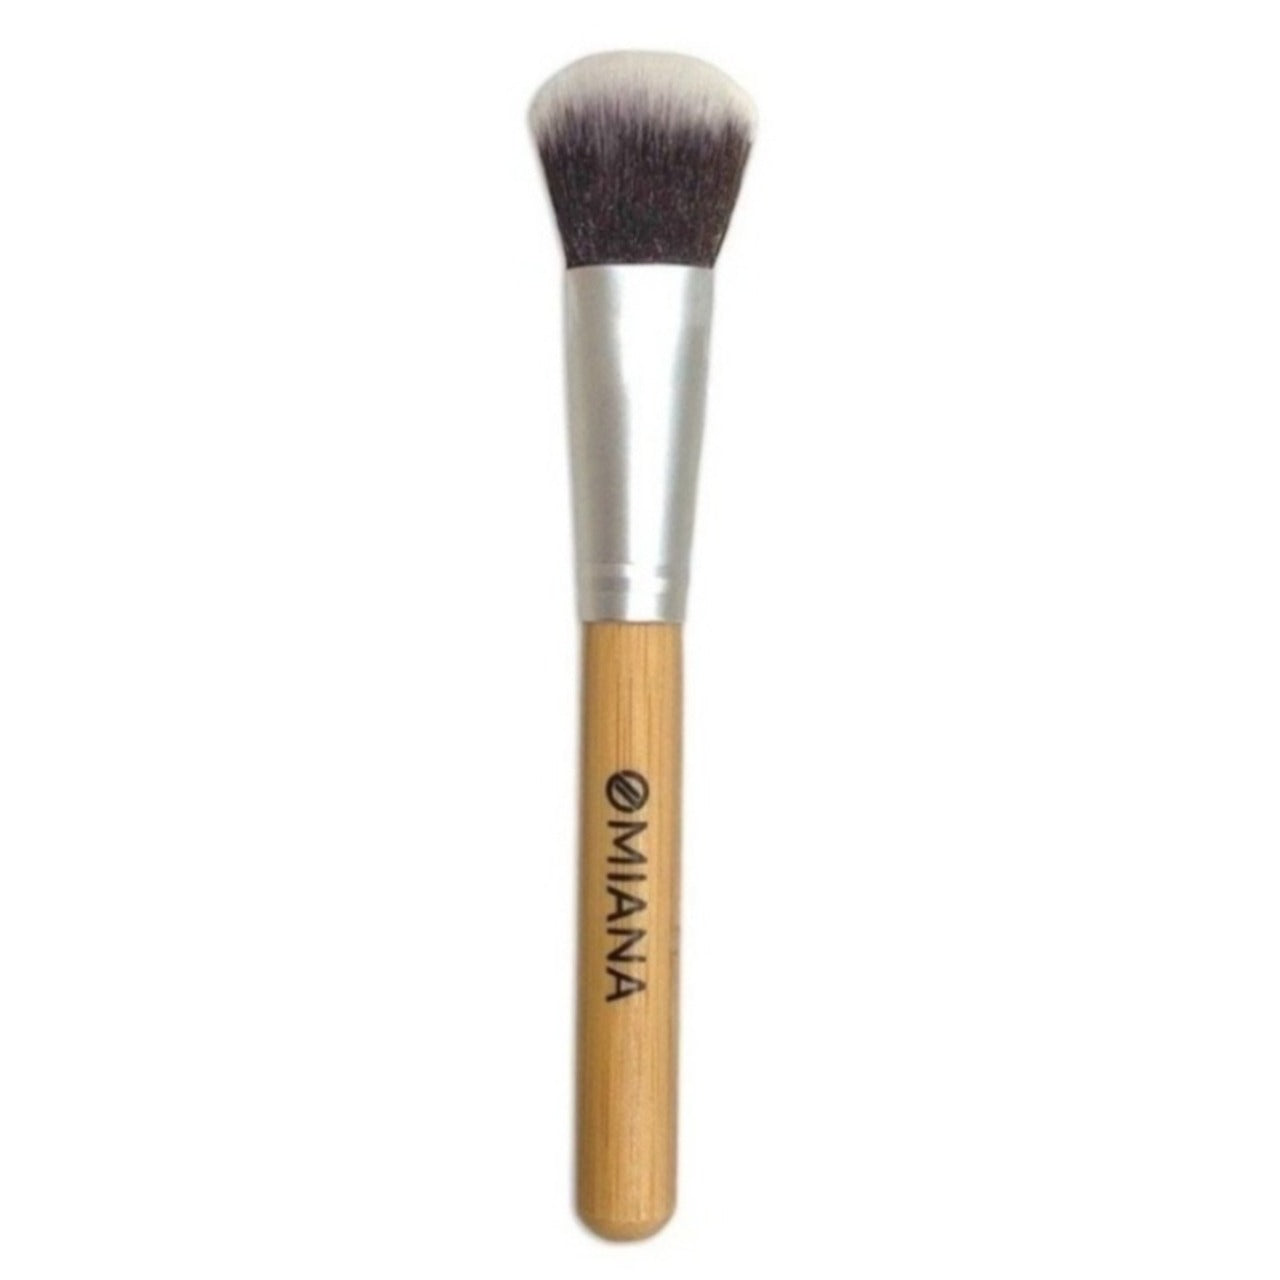 Omiana Vegan Bamboo Perfect Complexion Makeup Brush